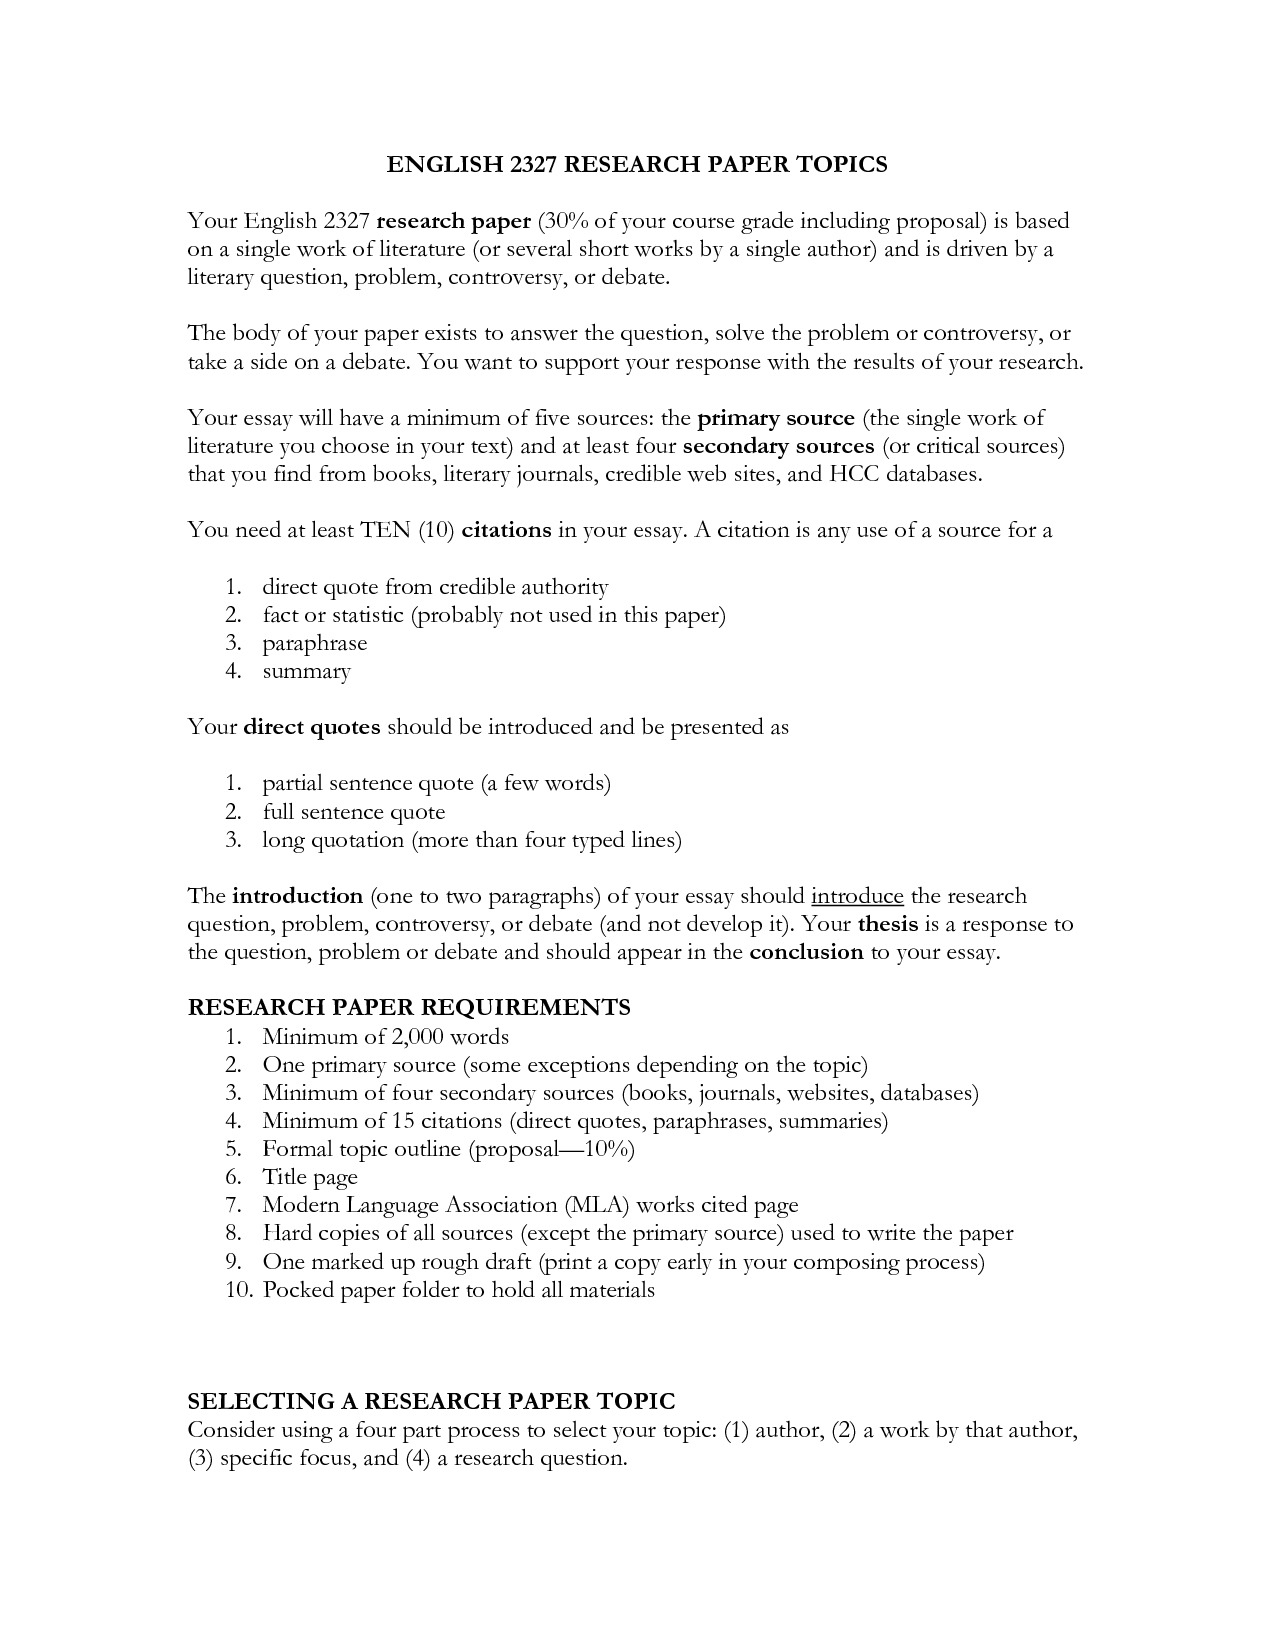 Essay About Industry  Essay Literacy also Essay On Smoking  Good Research Paper Topics For English Essay Demire  Essays On Manifest Destiny